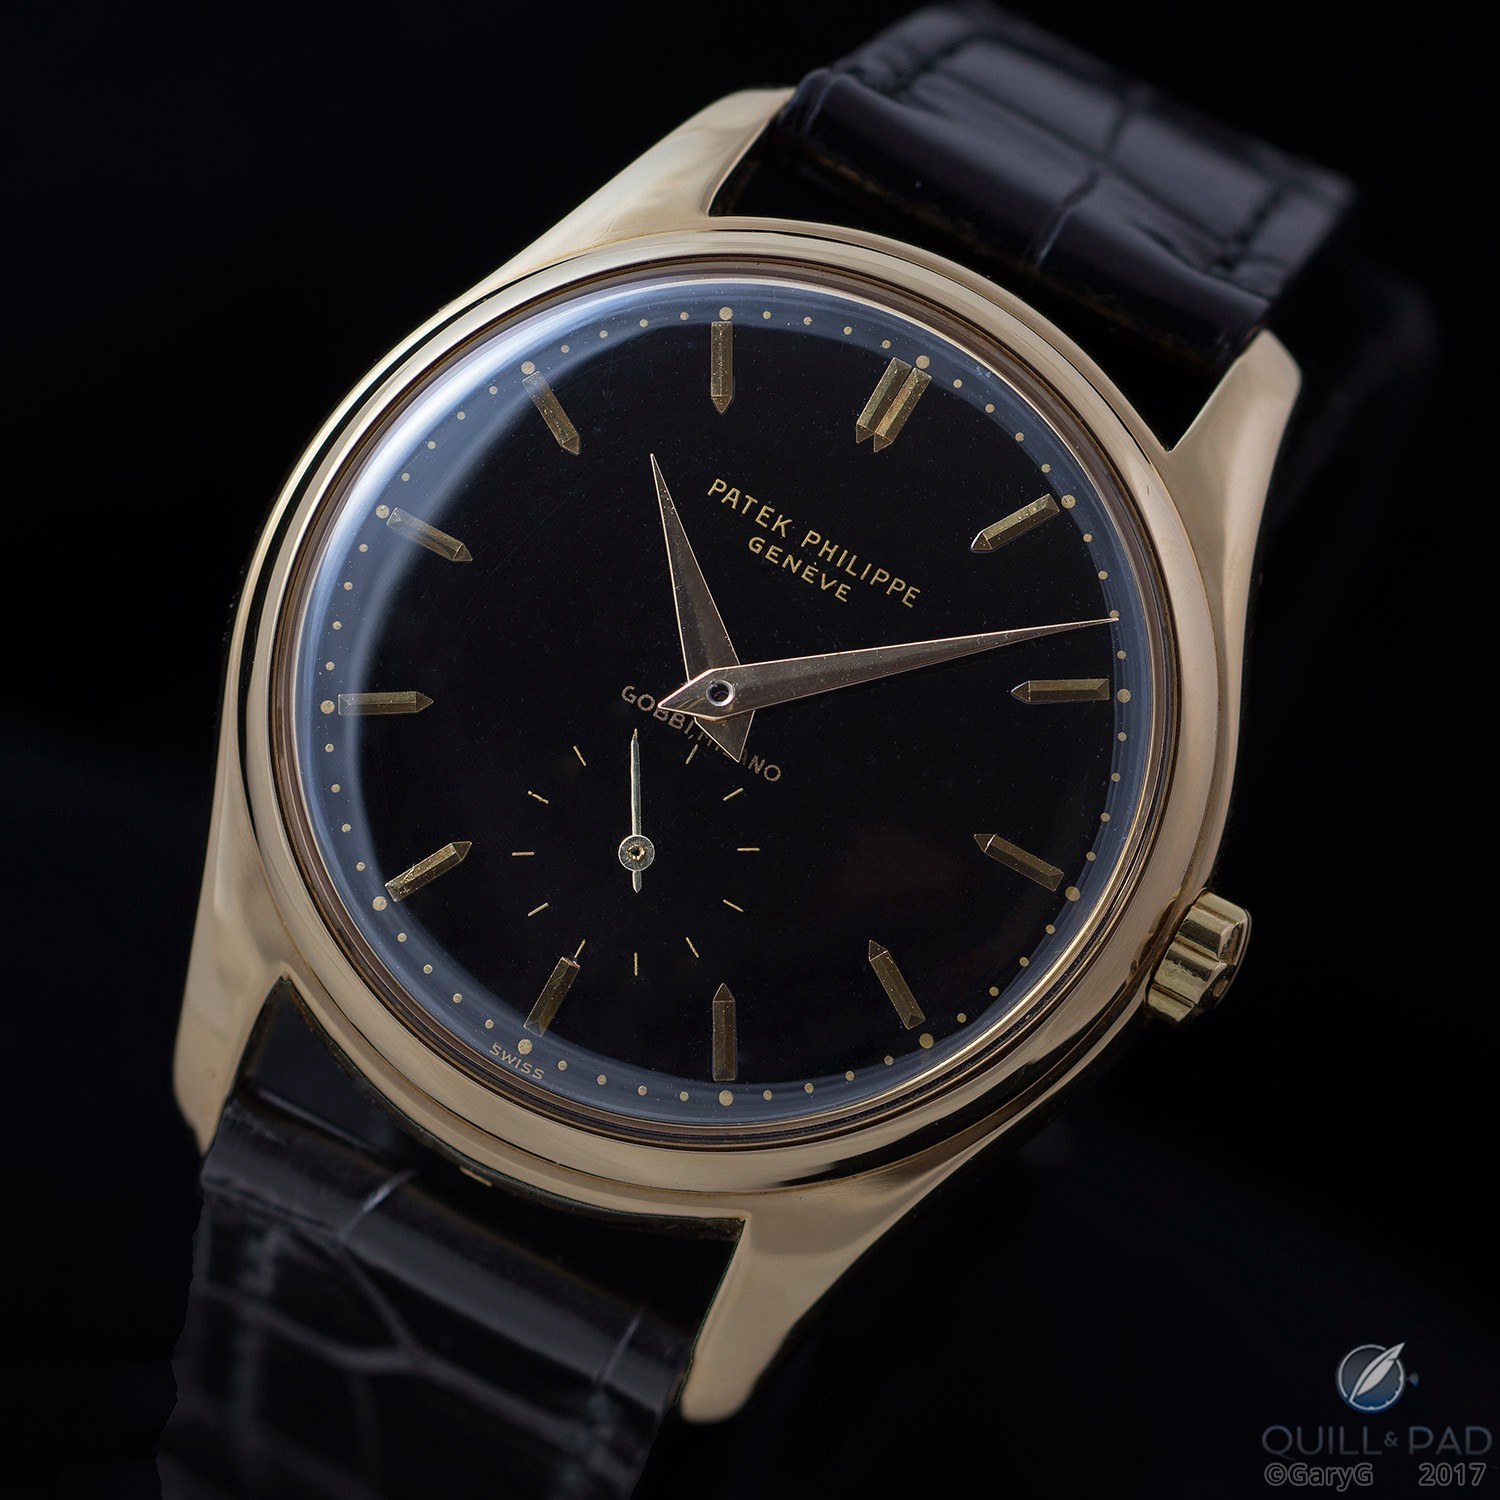 Classic looks: Patek Philippe Reference 2526 with black enamel dial